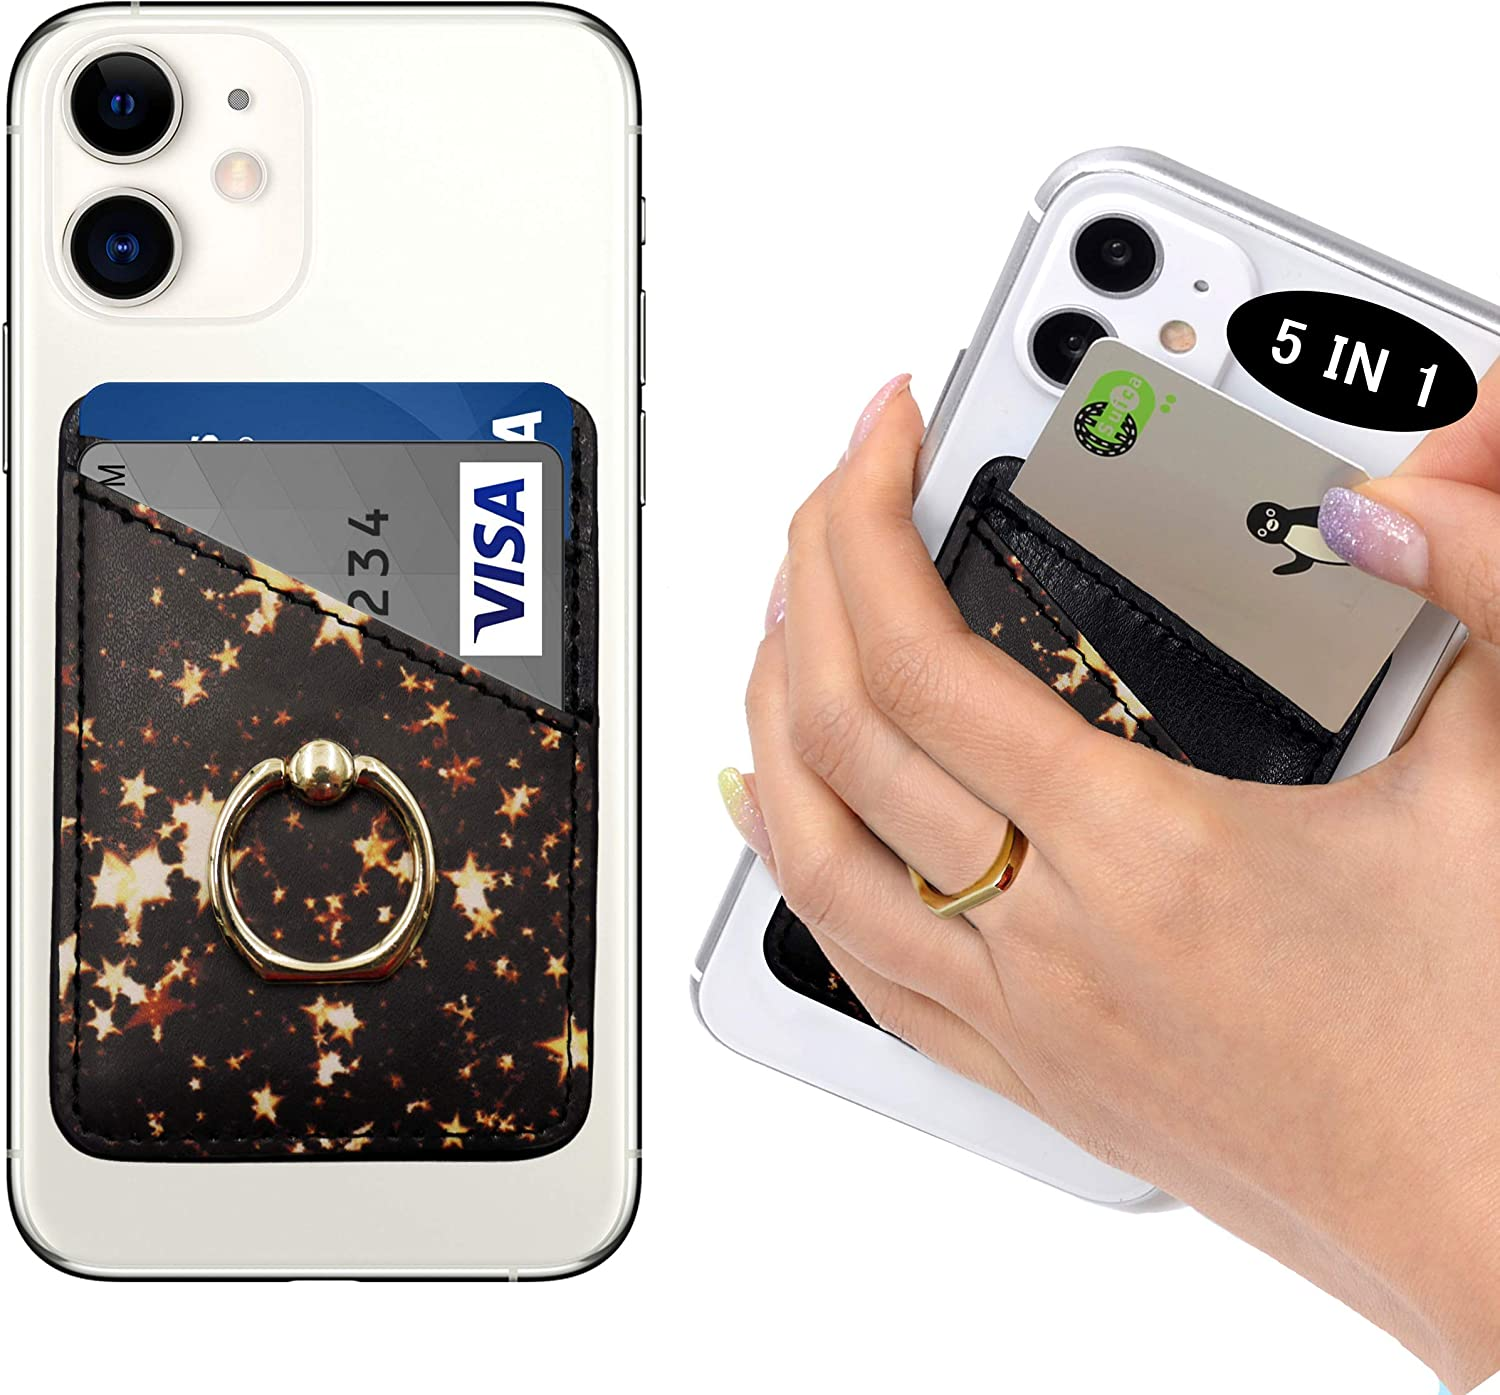 POLIFALL Leather Phone Card Holder (StarGlow 2) 5 in 1 Stick On Wallet Sleeve Back - Double Pocket + Finger Ring Stand + Metal Plate for Magnet Mount + RFID Block for iPhone, Galaxy, Android, Mobile